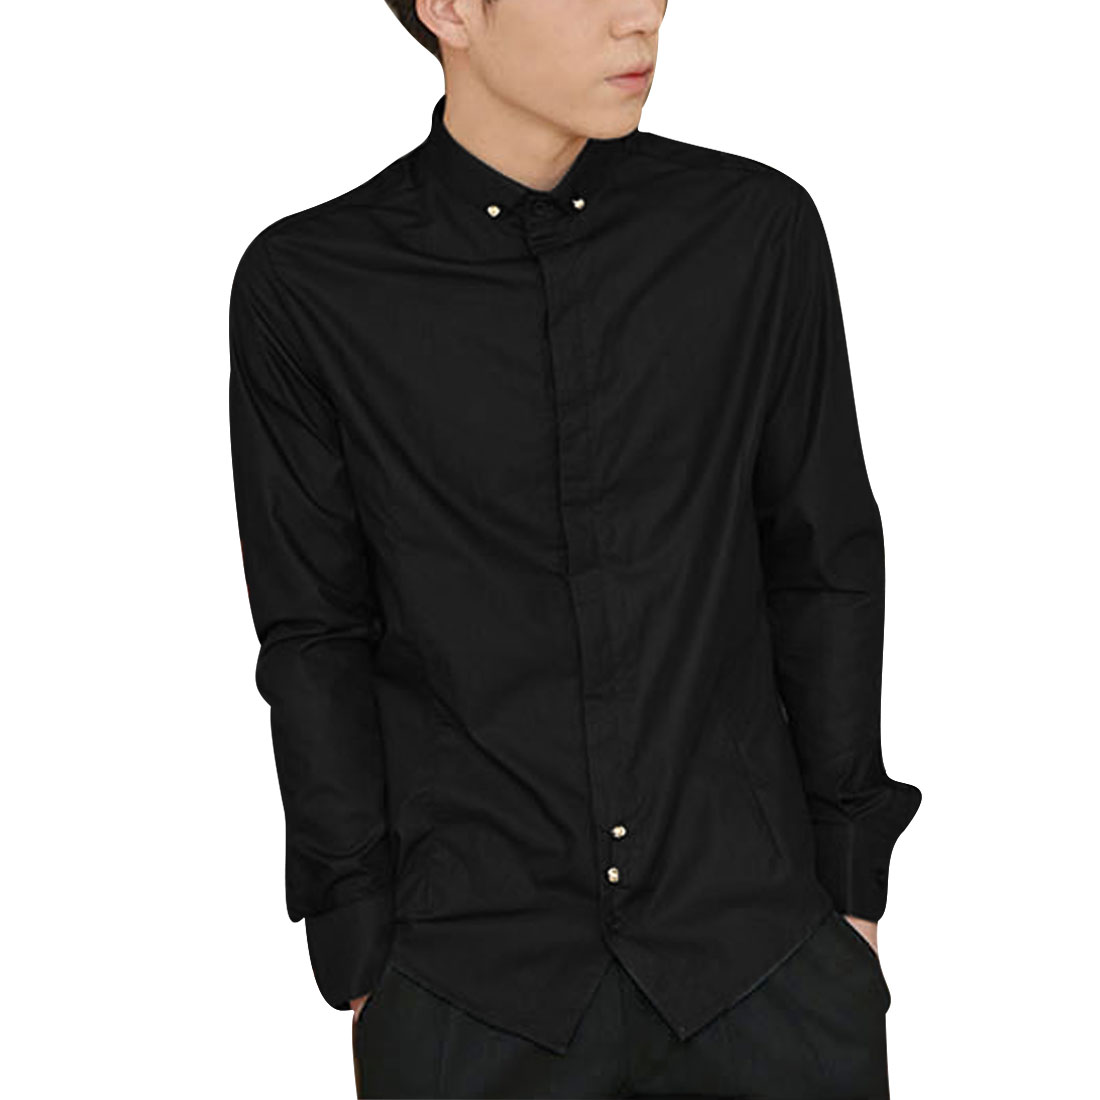 Men M Black Point Collar Single Breasted Design Solid Color Round Hem Shirt